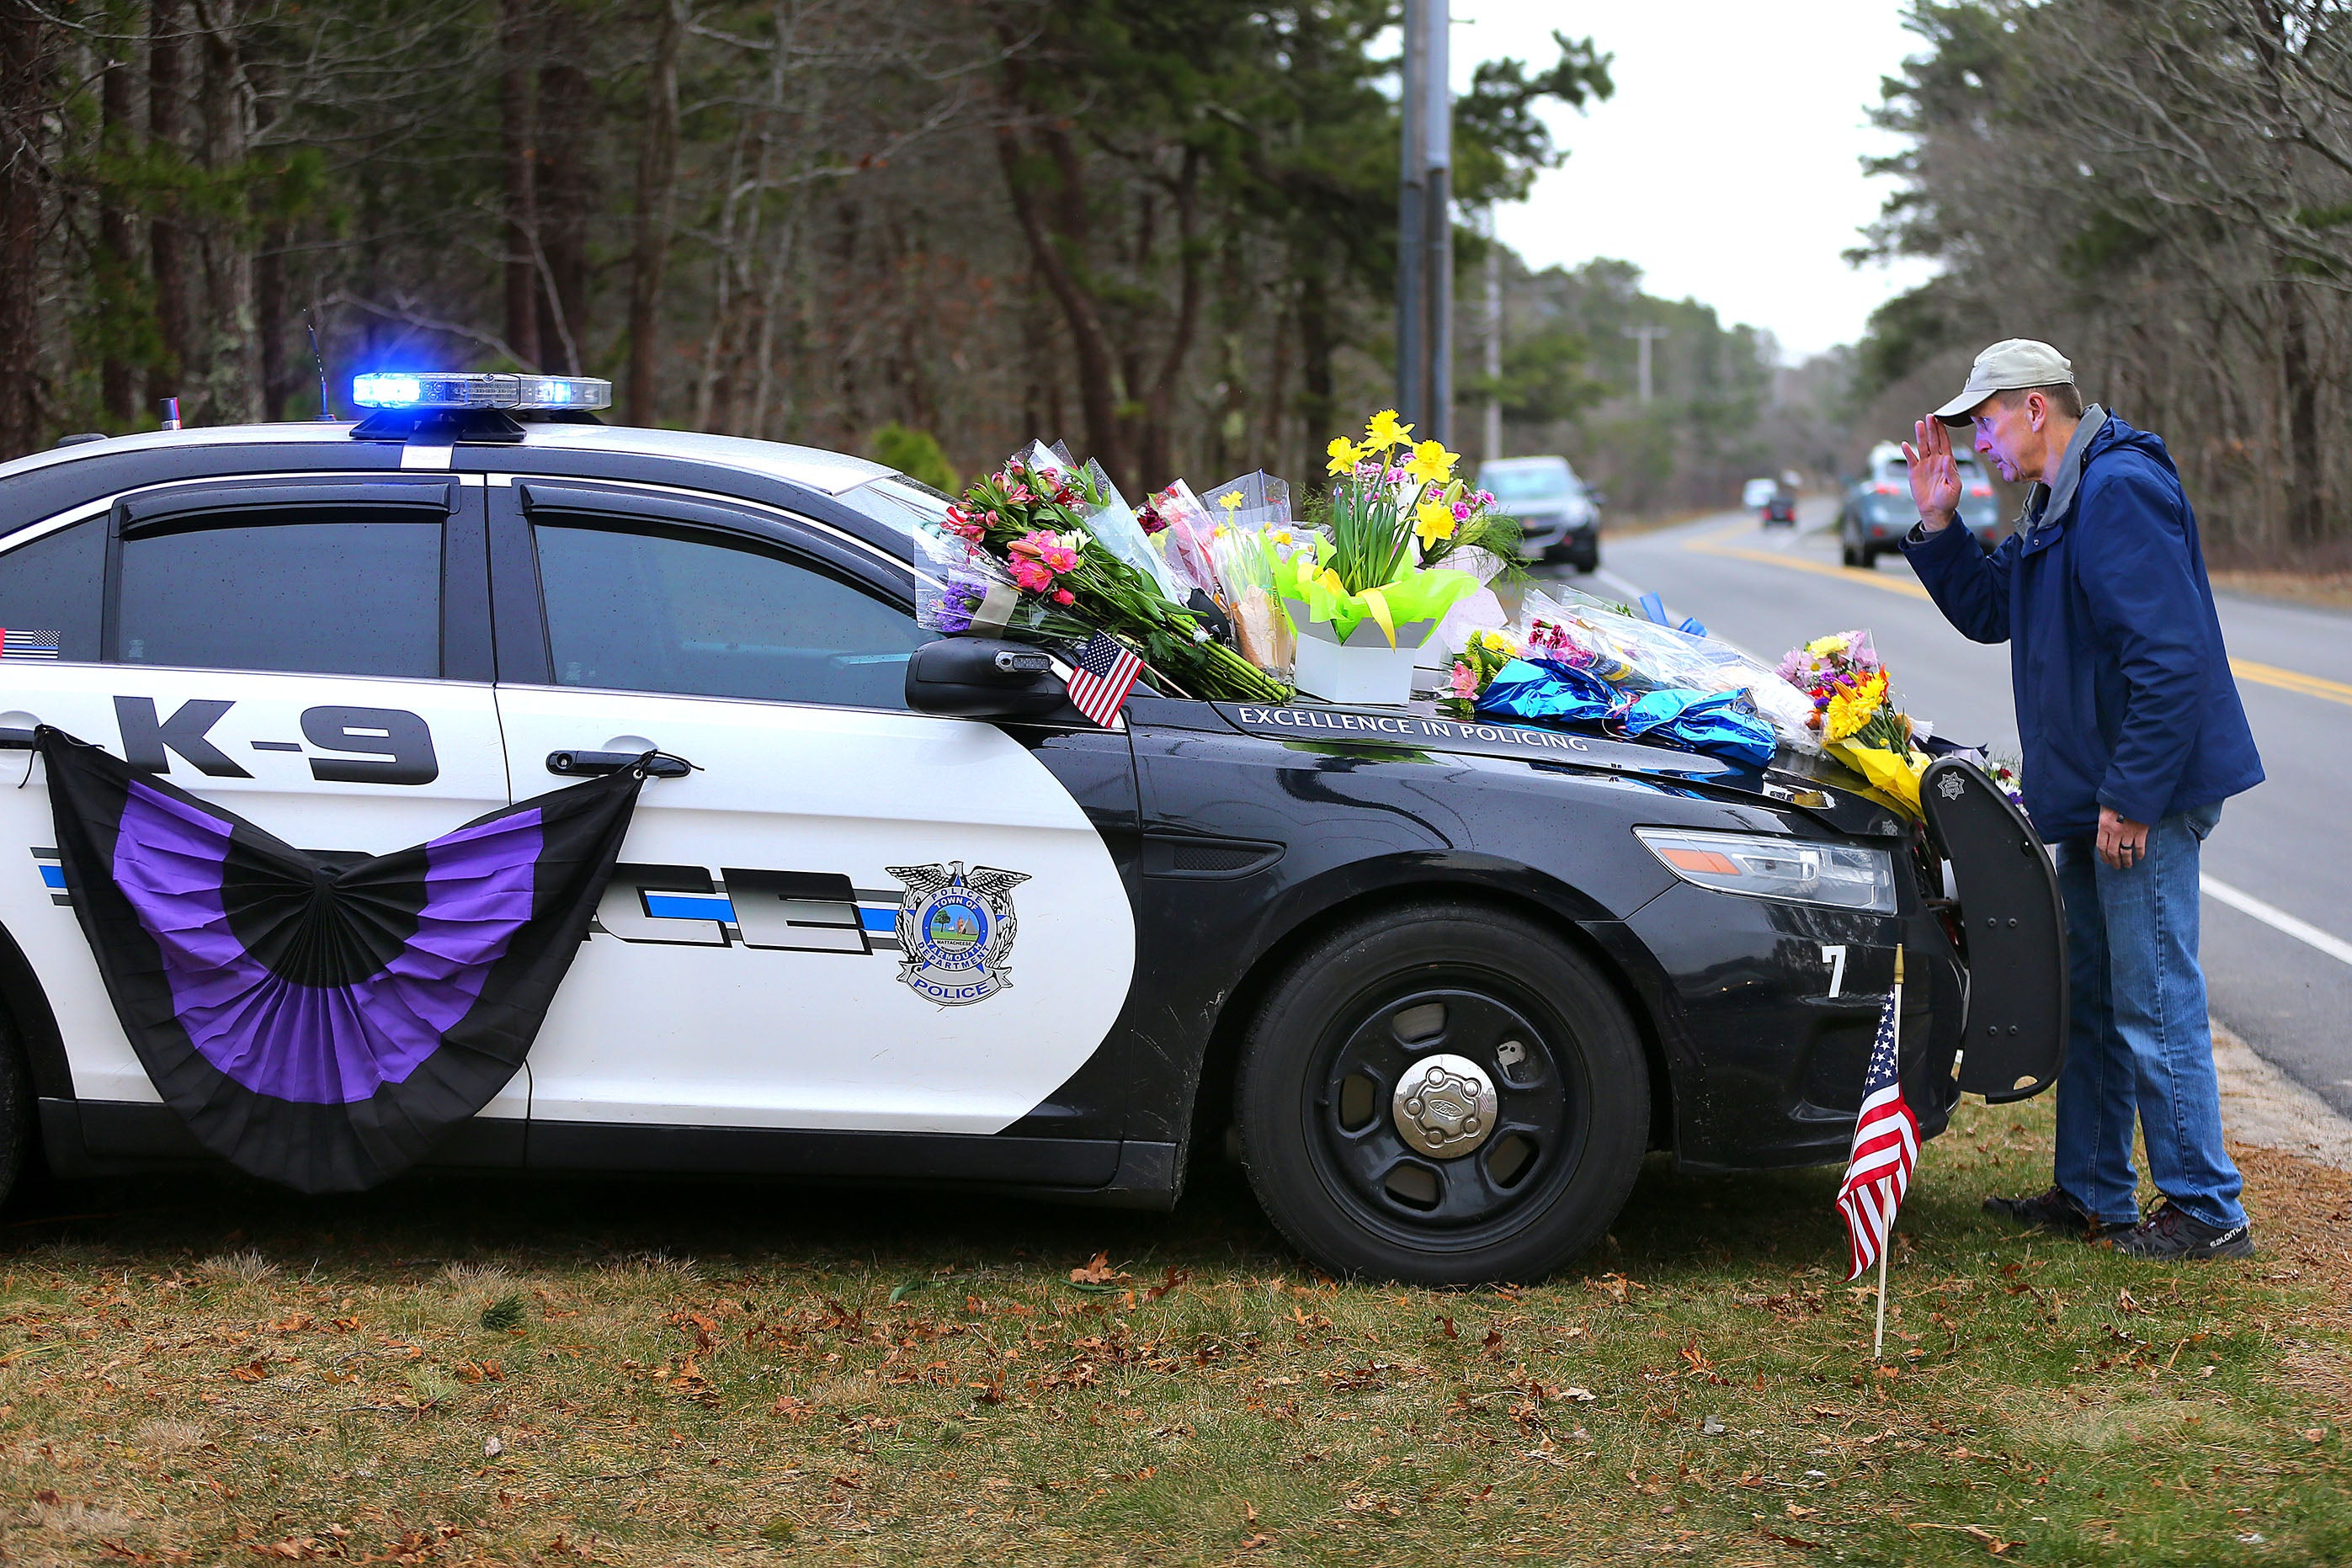 What we know about the fatal shooting of a Yarmouth police